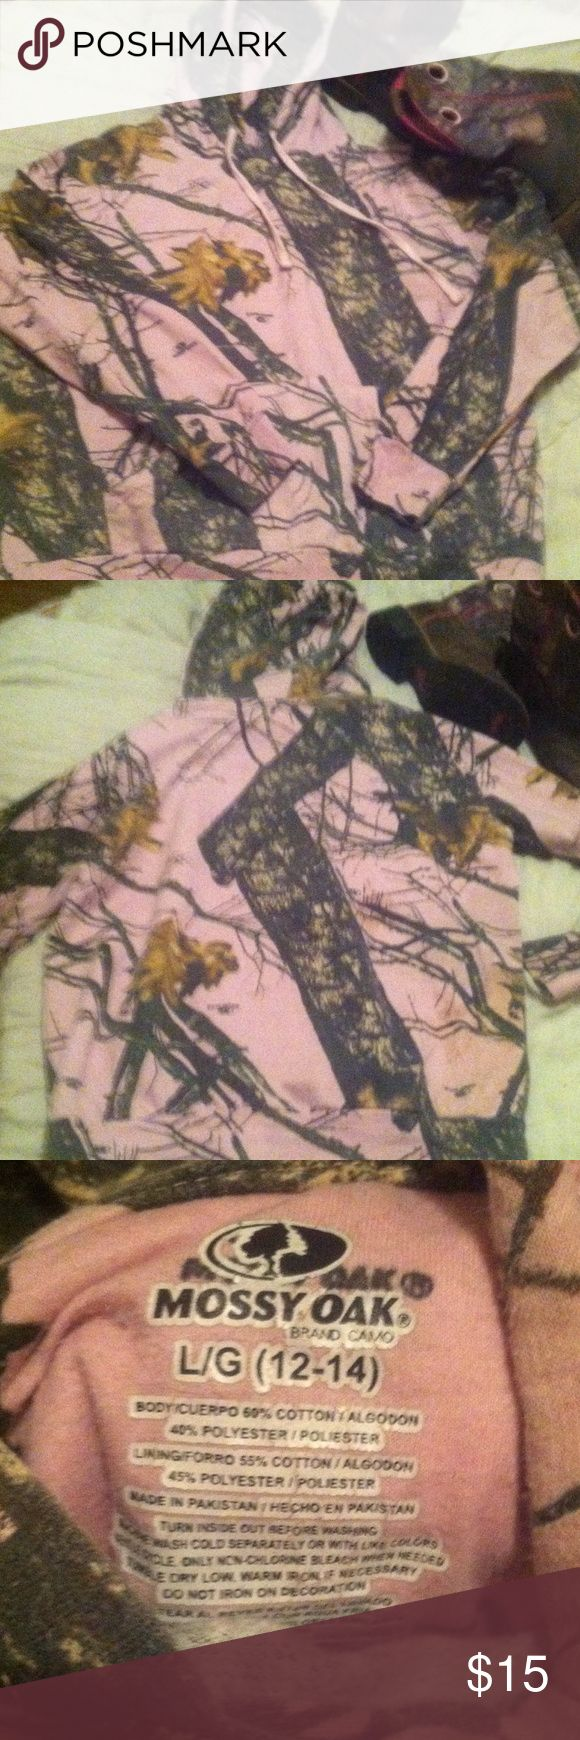 🎀Mossy Oak camo hoodie🎀 💖Pink Mossy Oak hoodie. Small stain in pic 4 but hardly noticable, that's good thing about camo!!💕 Mossy Oak Tops Sweatshirts & Hoodies